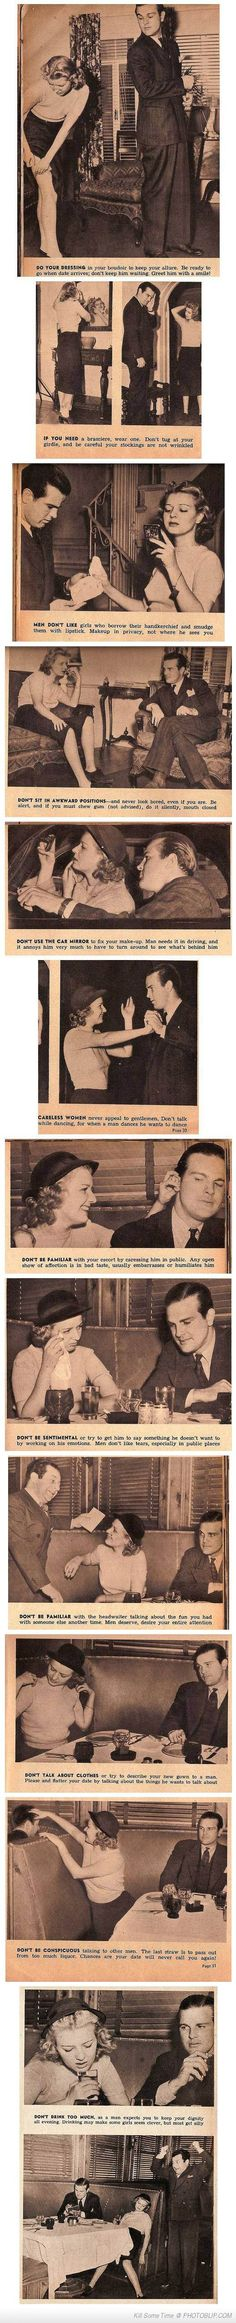 Dating Advice For Women In The 1950s